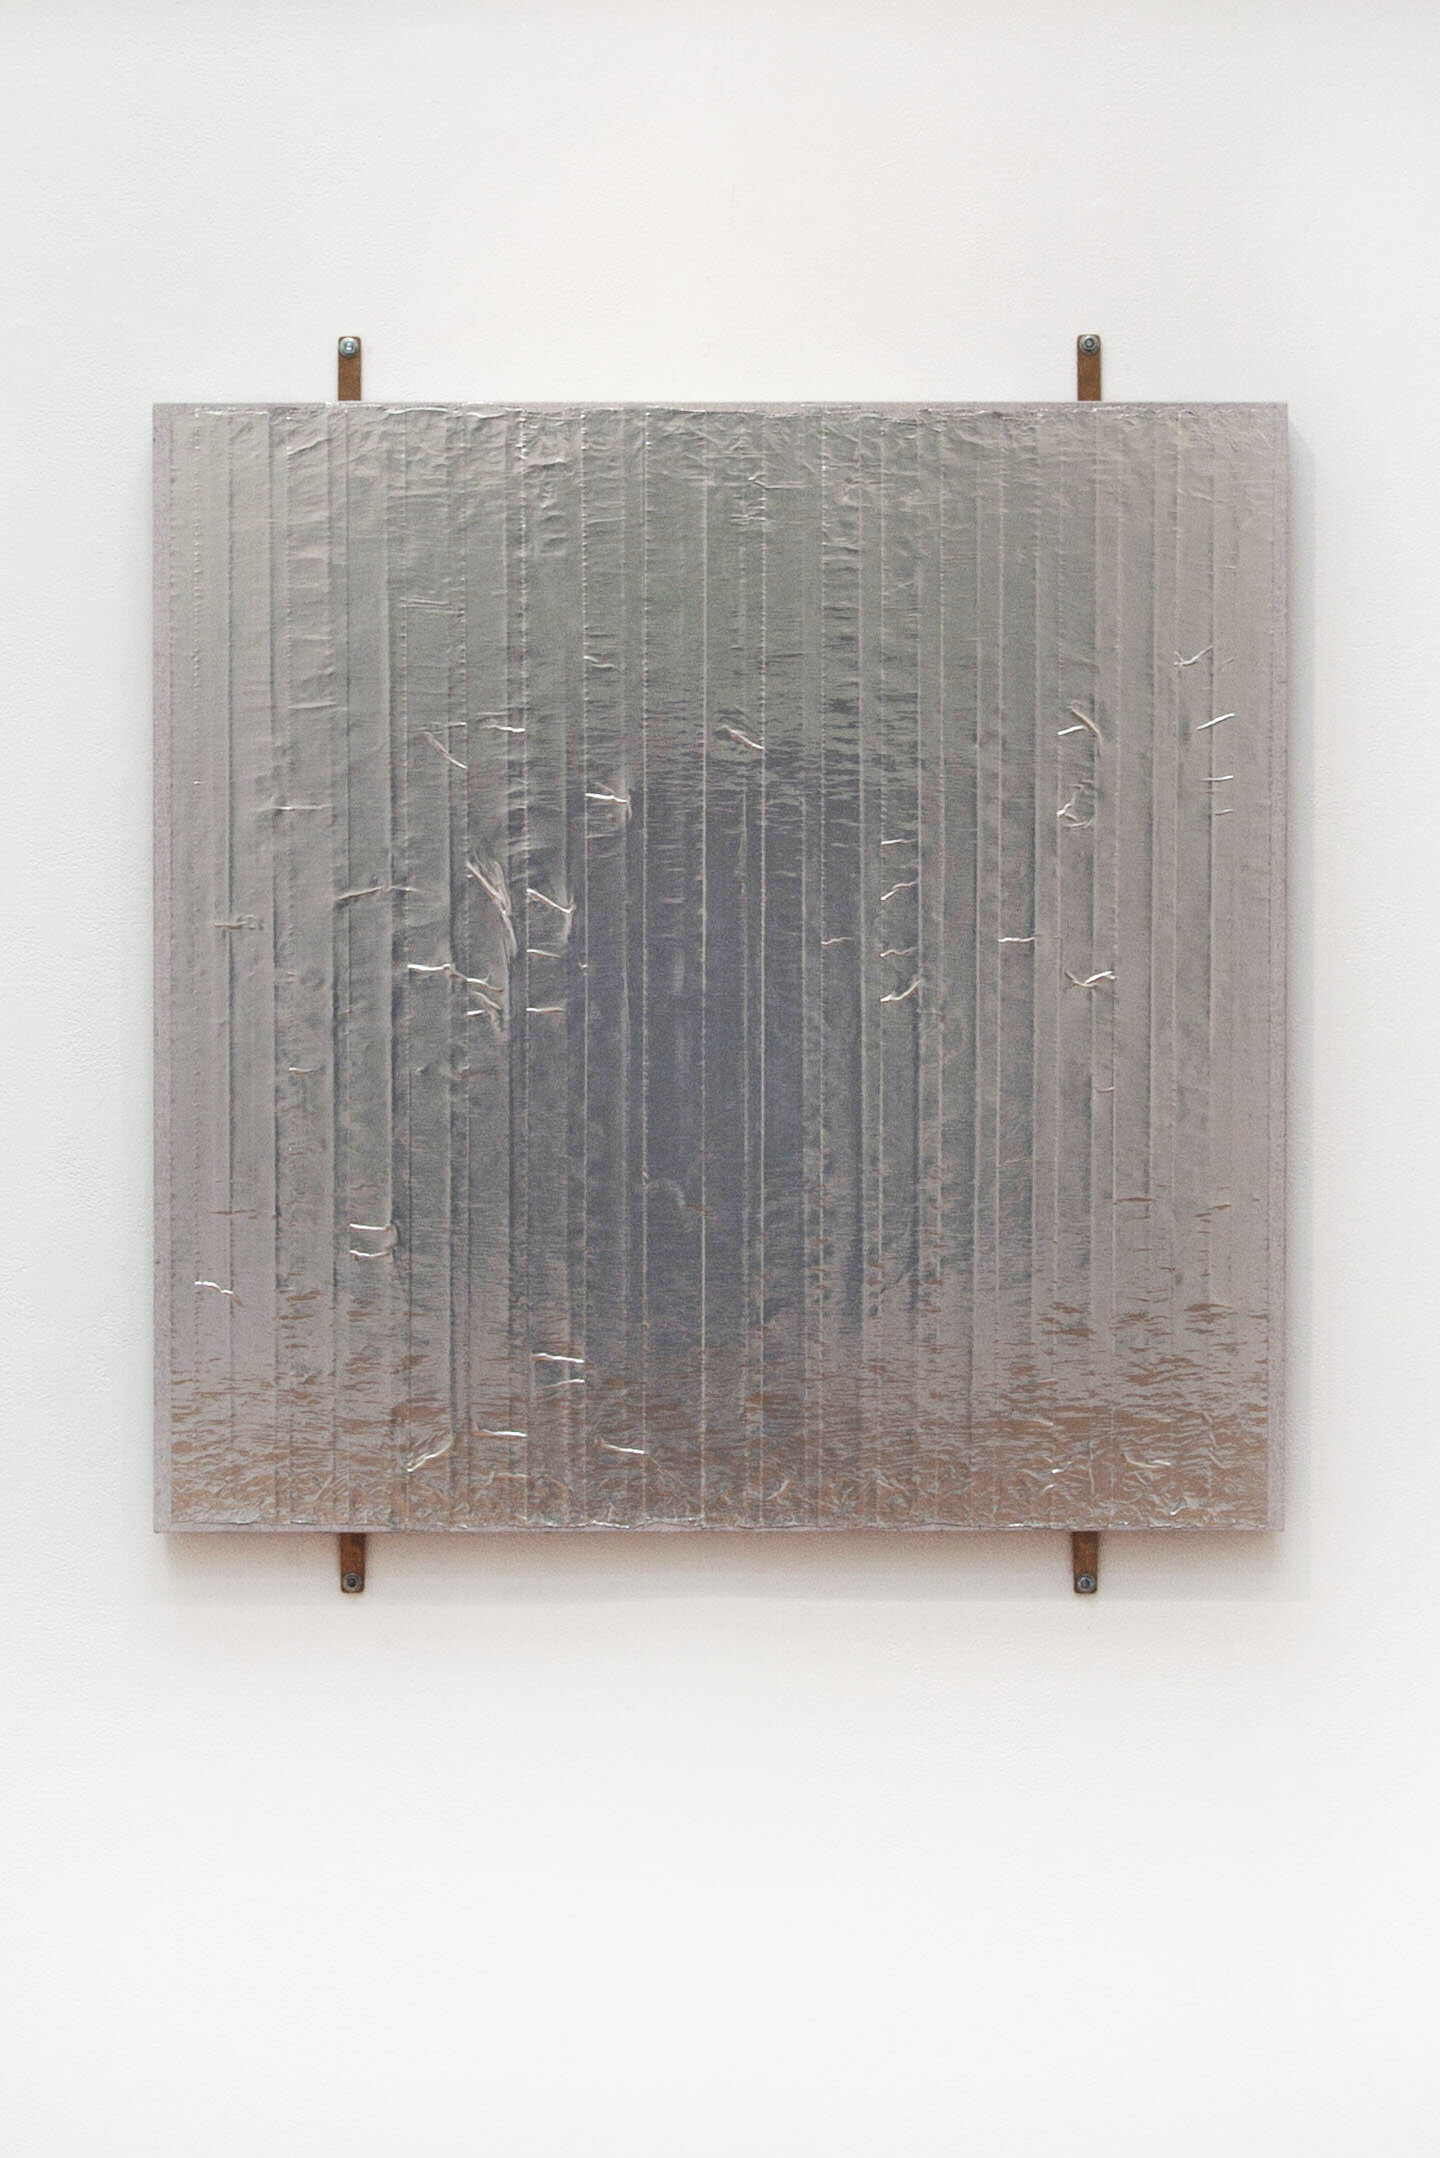 Boy Tears,  2019, aluminum tape on canvas over panel, Oz clips, 40 x 36 inches.